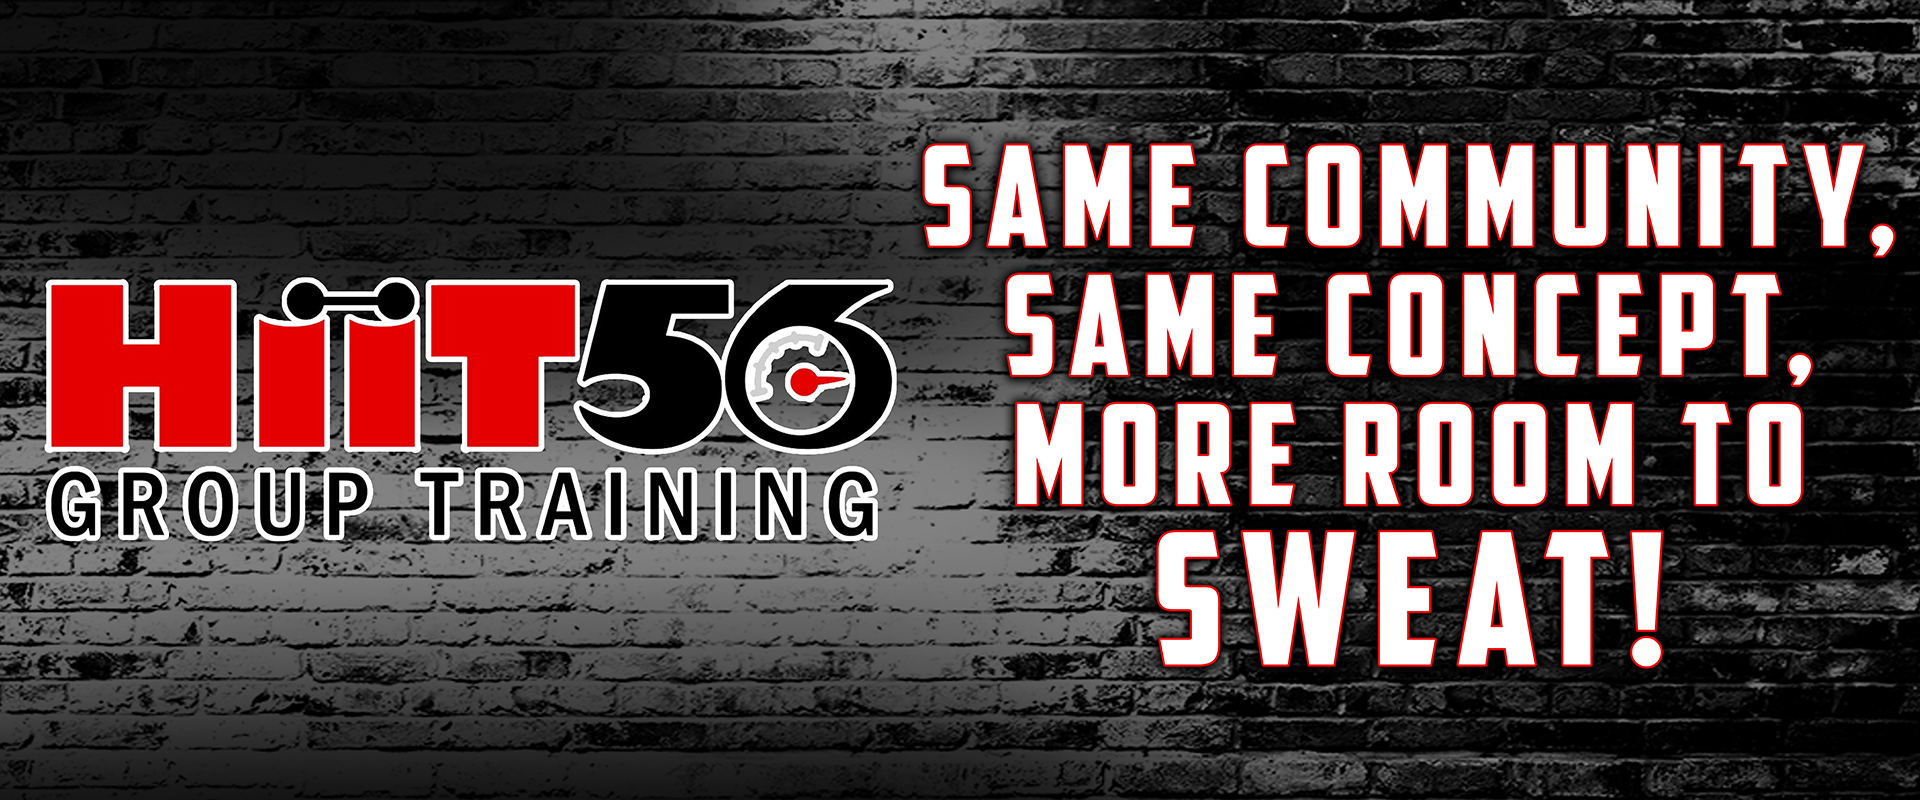 HiiT56 - We've Moved & There's More Room to Sweat